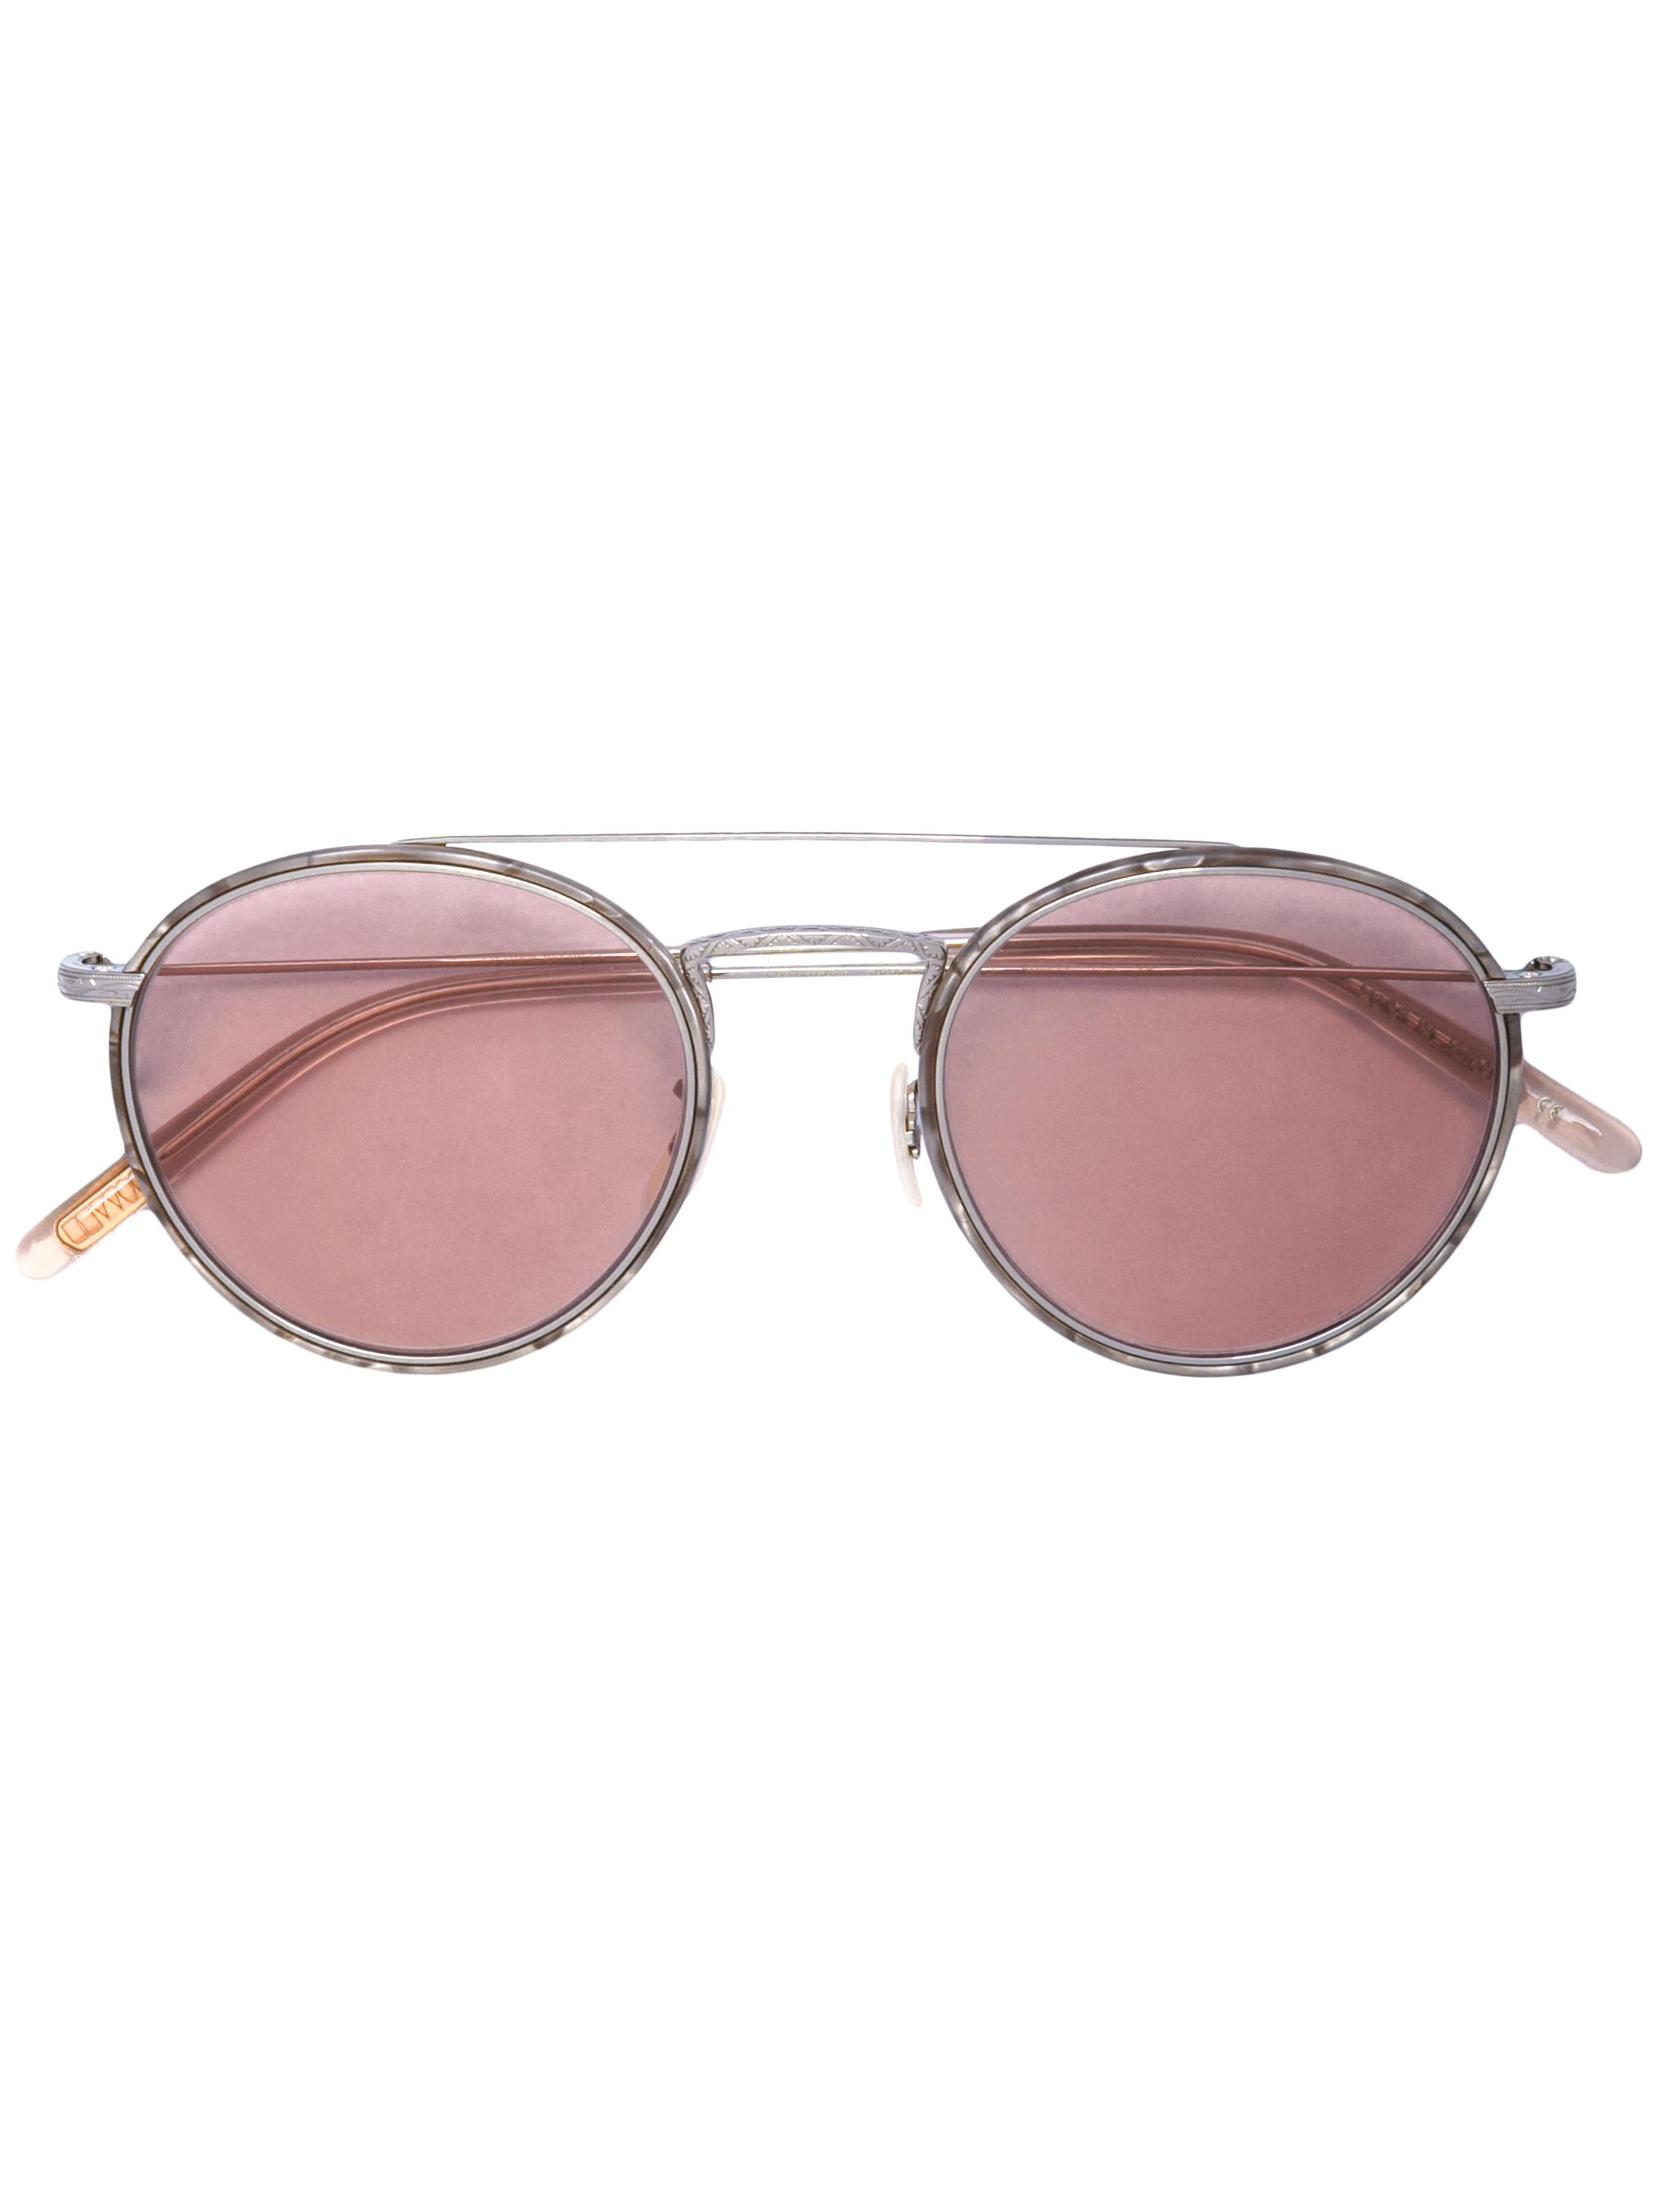 Ellice Rose Gold Tint Round Sunglasses Item # 0OV1235ST-ROSE